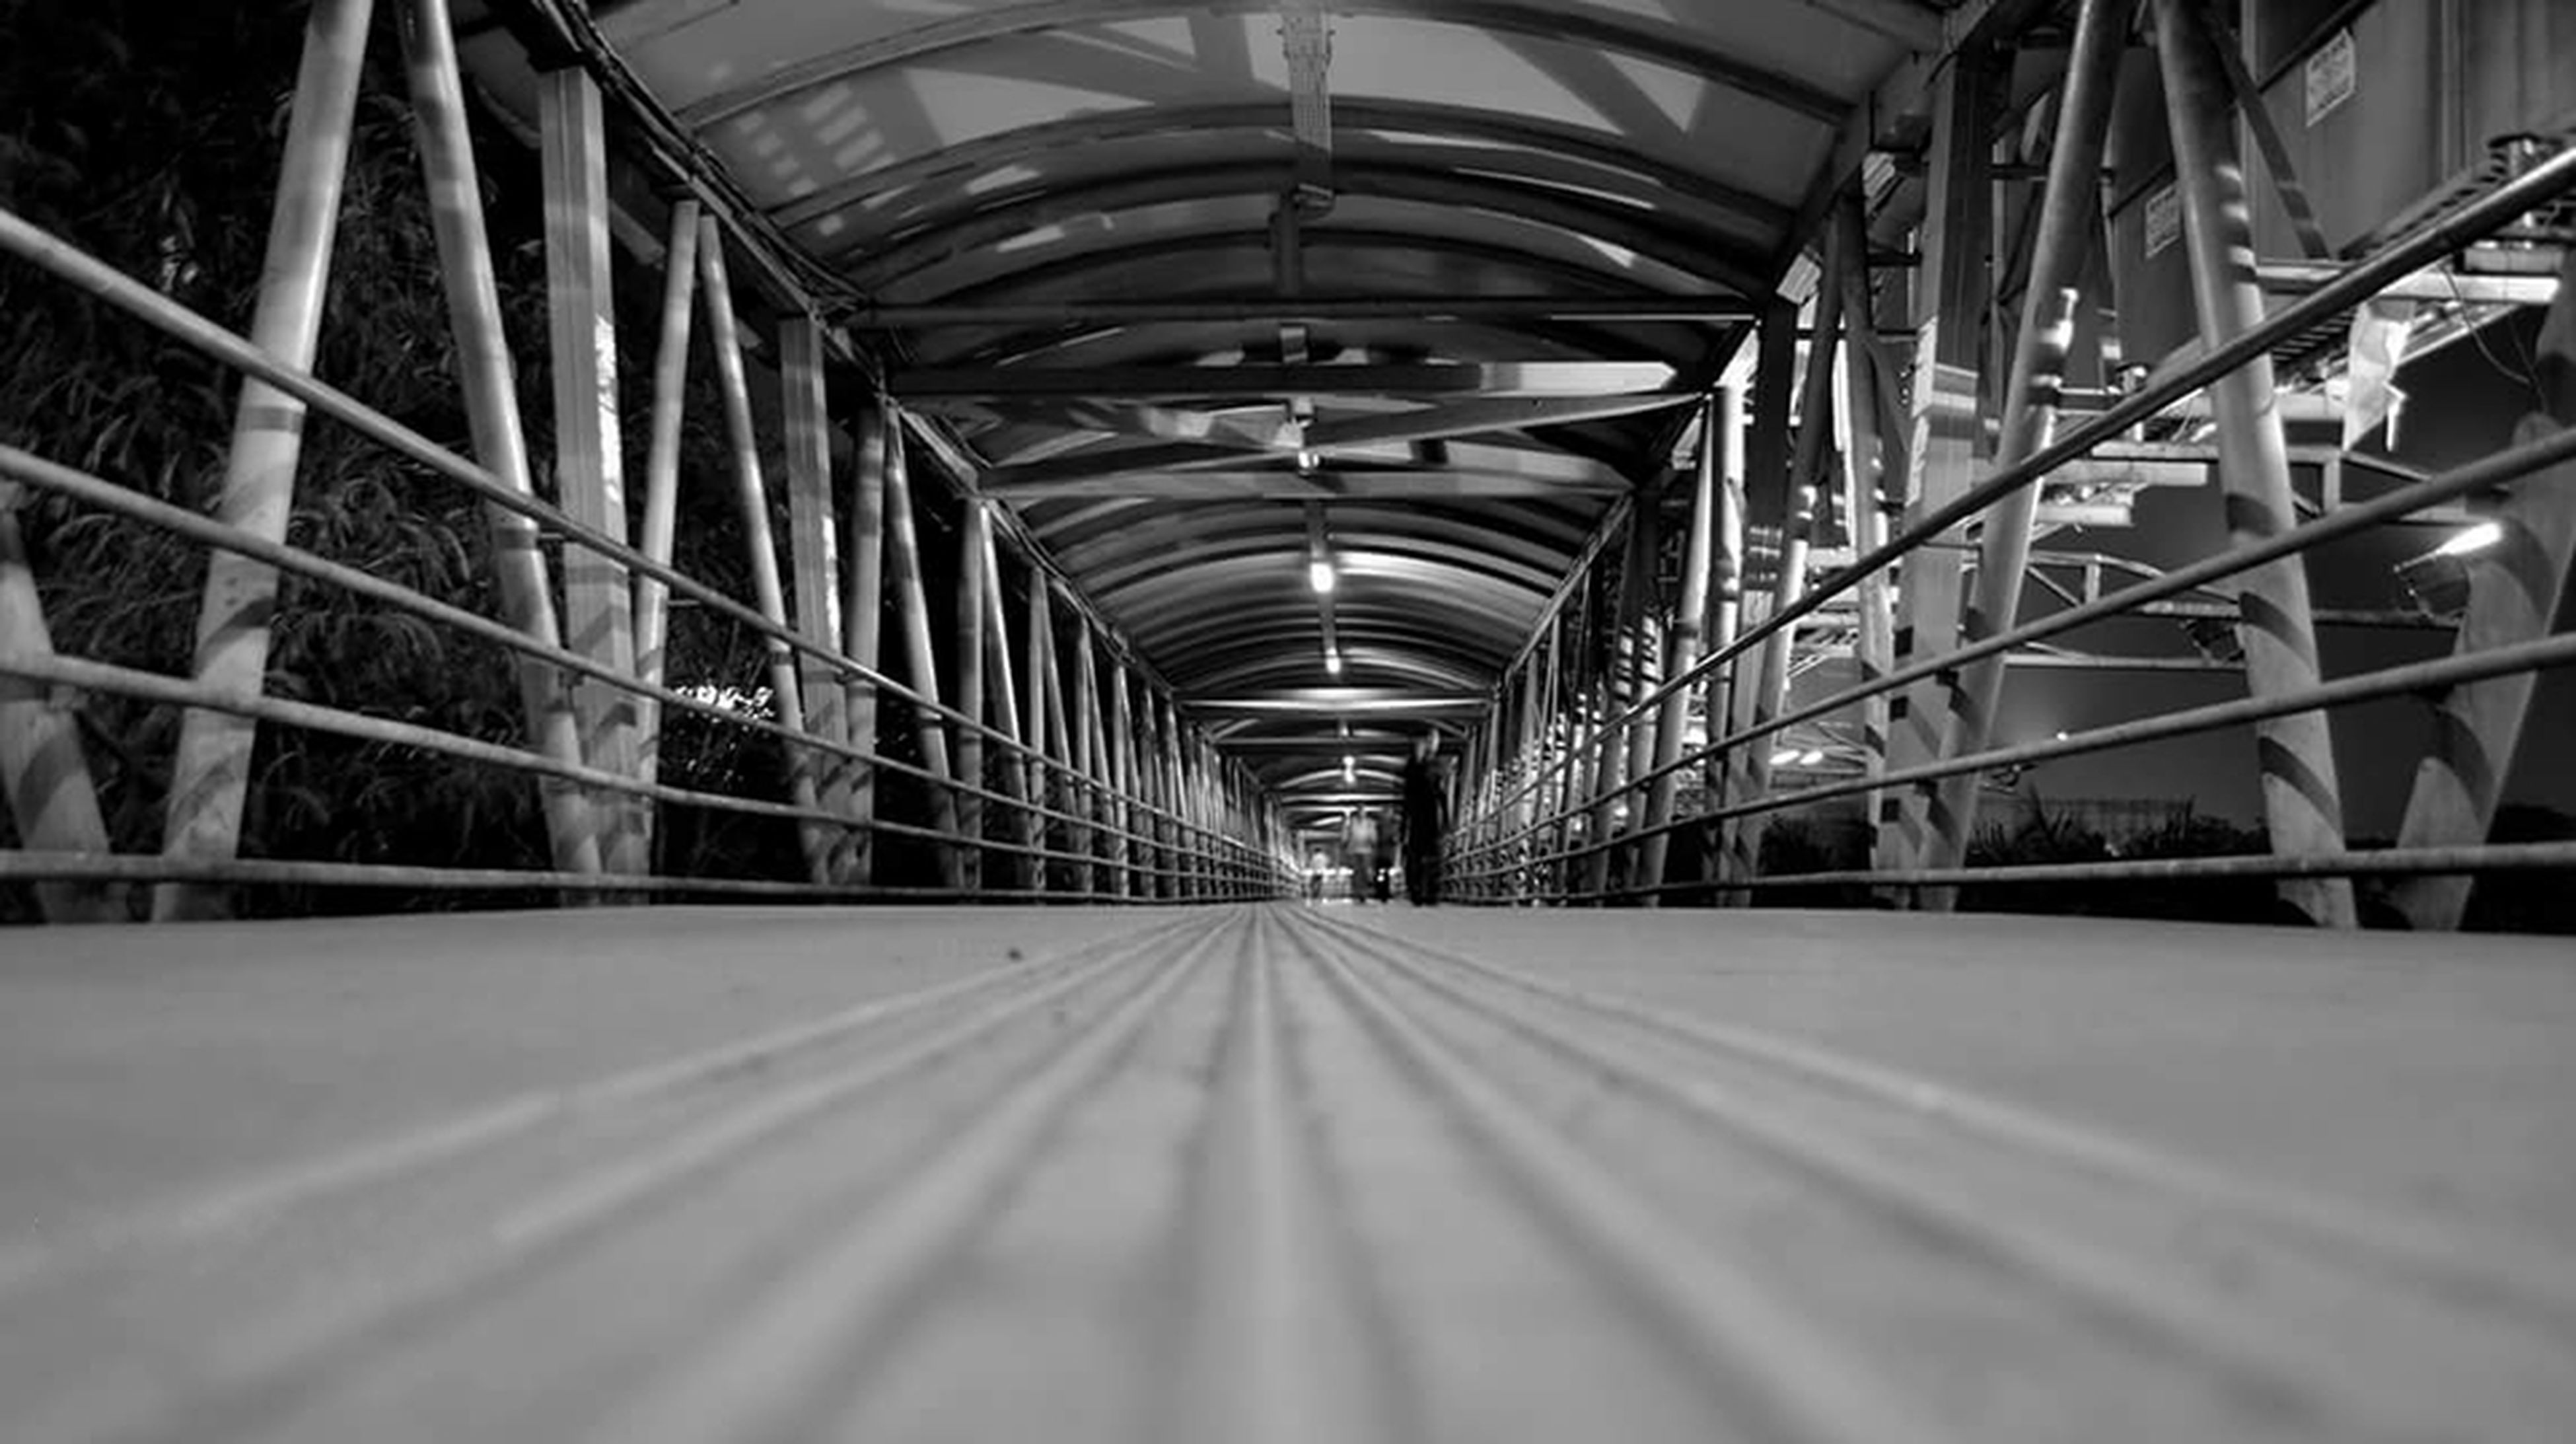 indoors, the way forward, diminishing perspective, architecture, ceiling, built structure, vanishing point, empty, corridor, long, in a row, surface level, transportation, absence, no people, connection, arch, repetition, tunnel, flooring